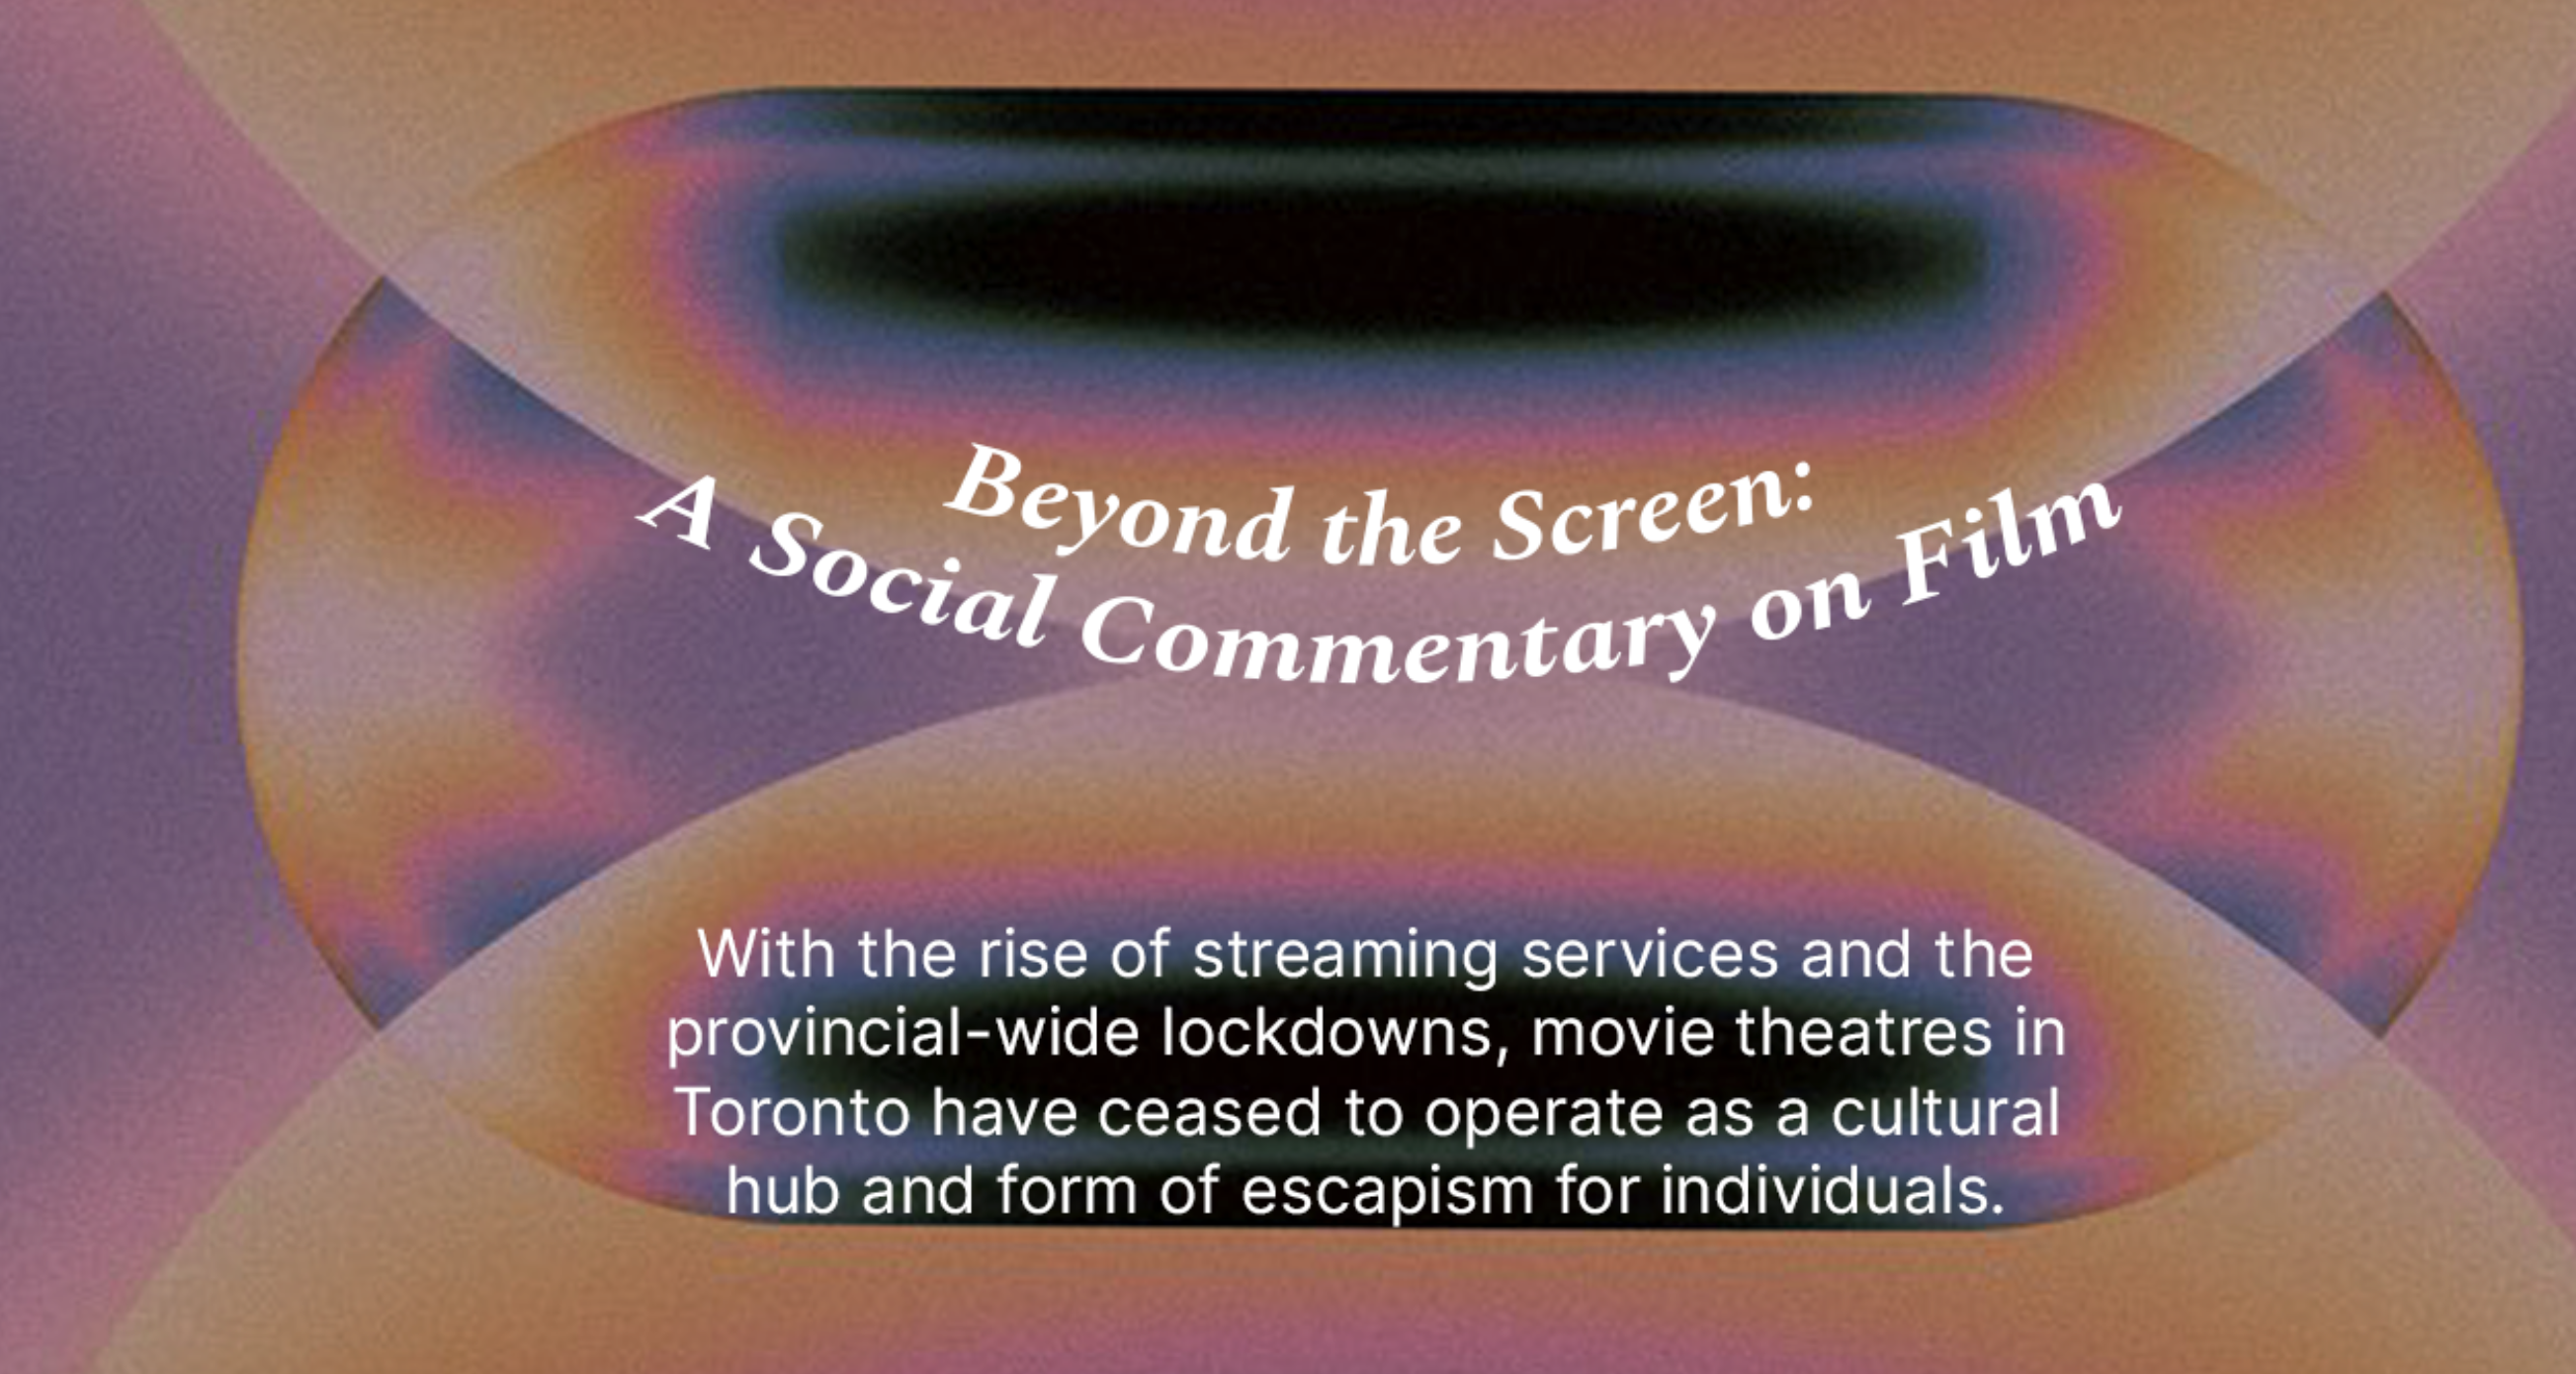 Beyond the Screen: A Social Commentary on Film